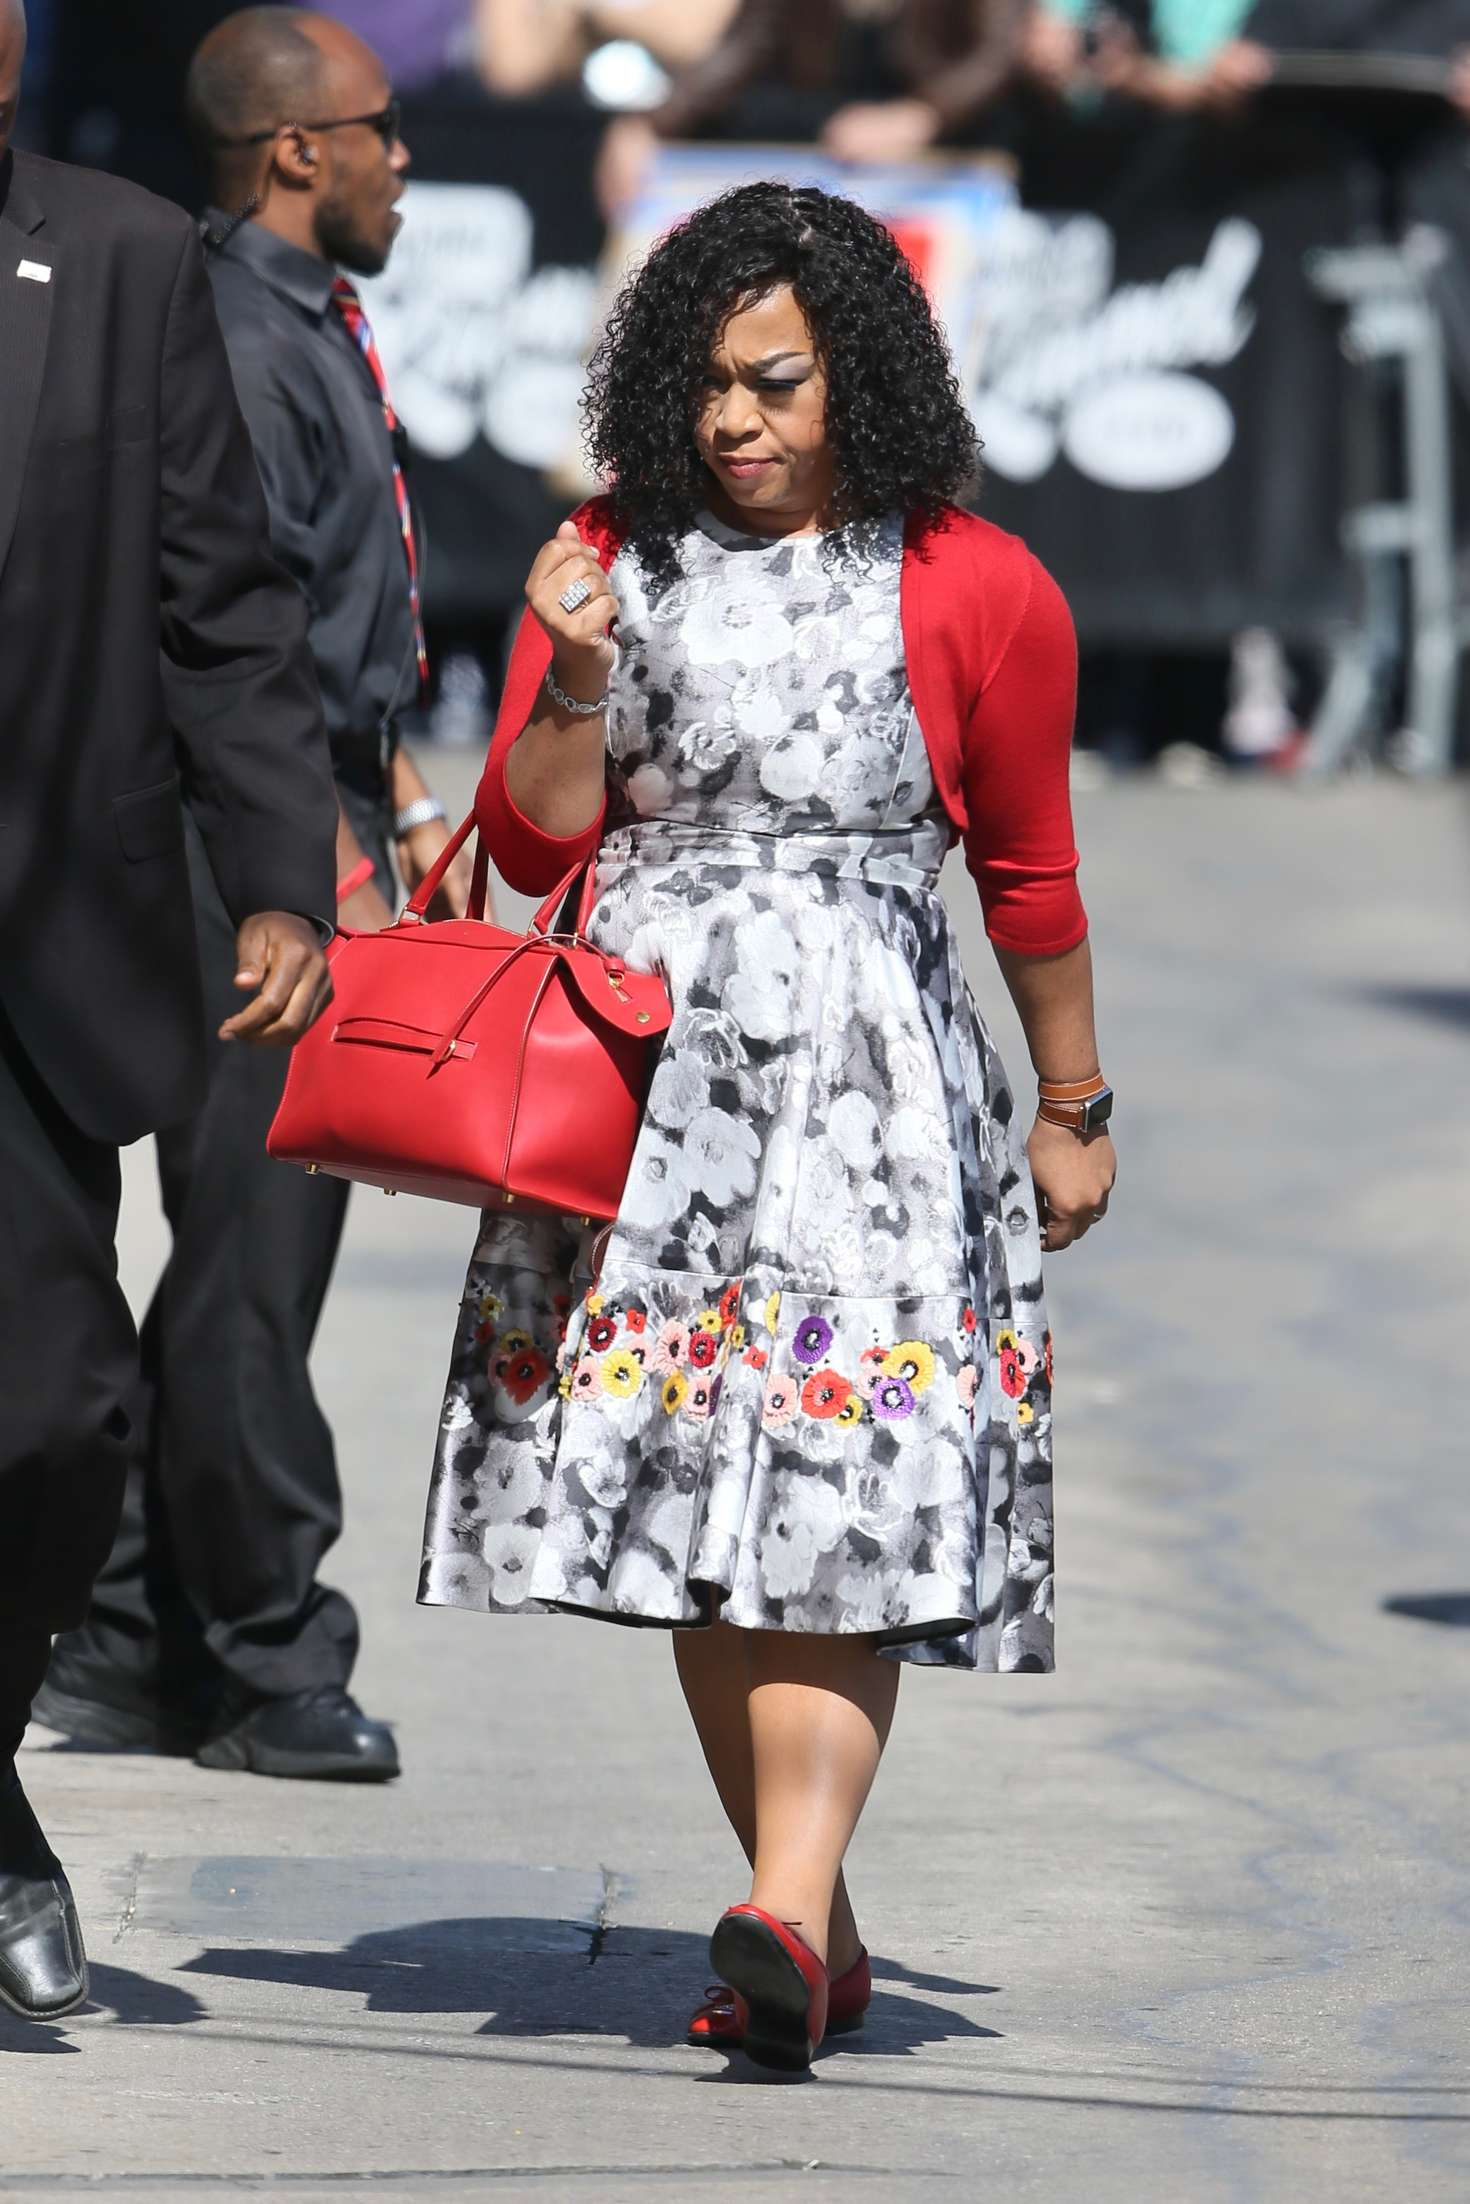 Shonda Rhimes - Arriving at Jimmy Kimmel Live in Los Angeles